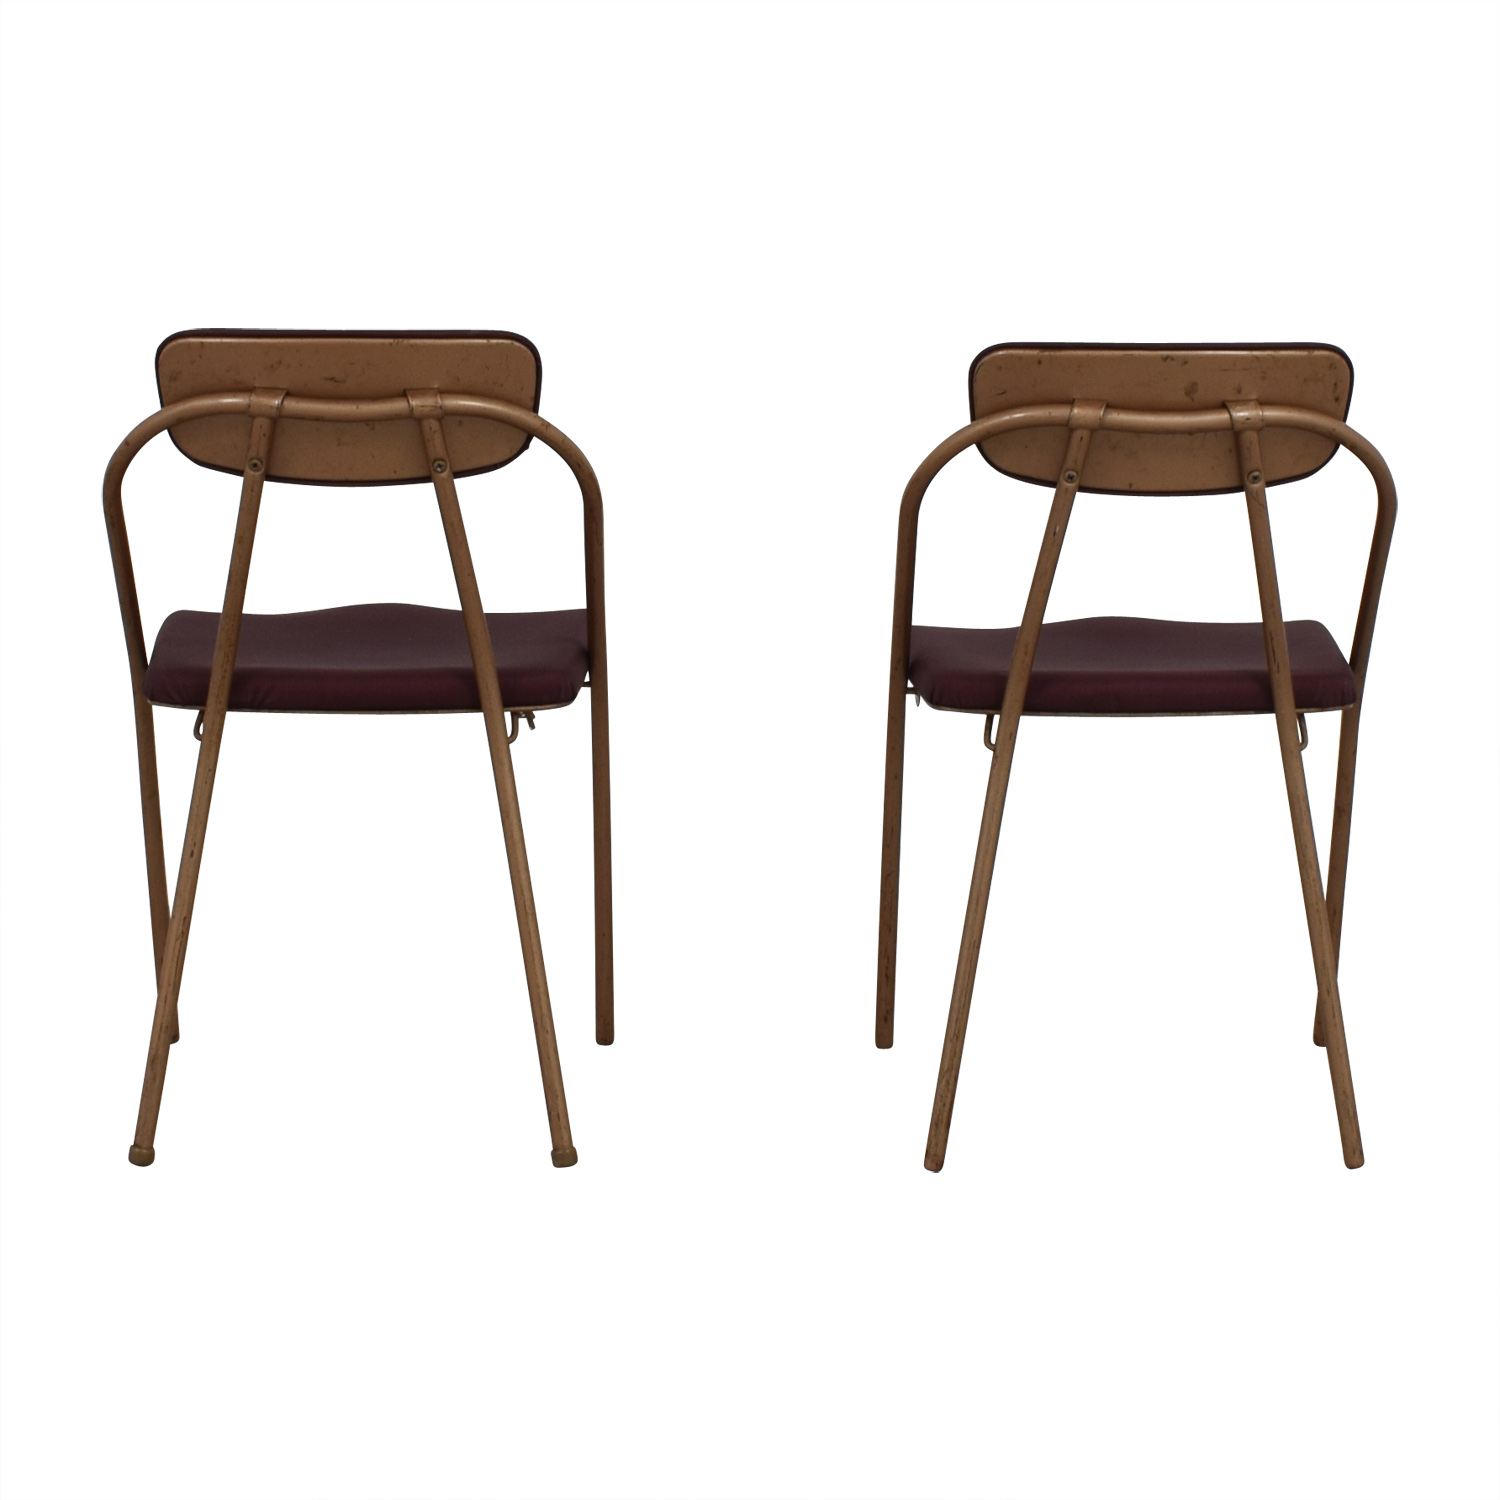 1960s Purple Folding Metal Chairs Dining Chairs